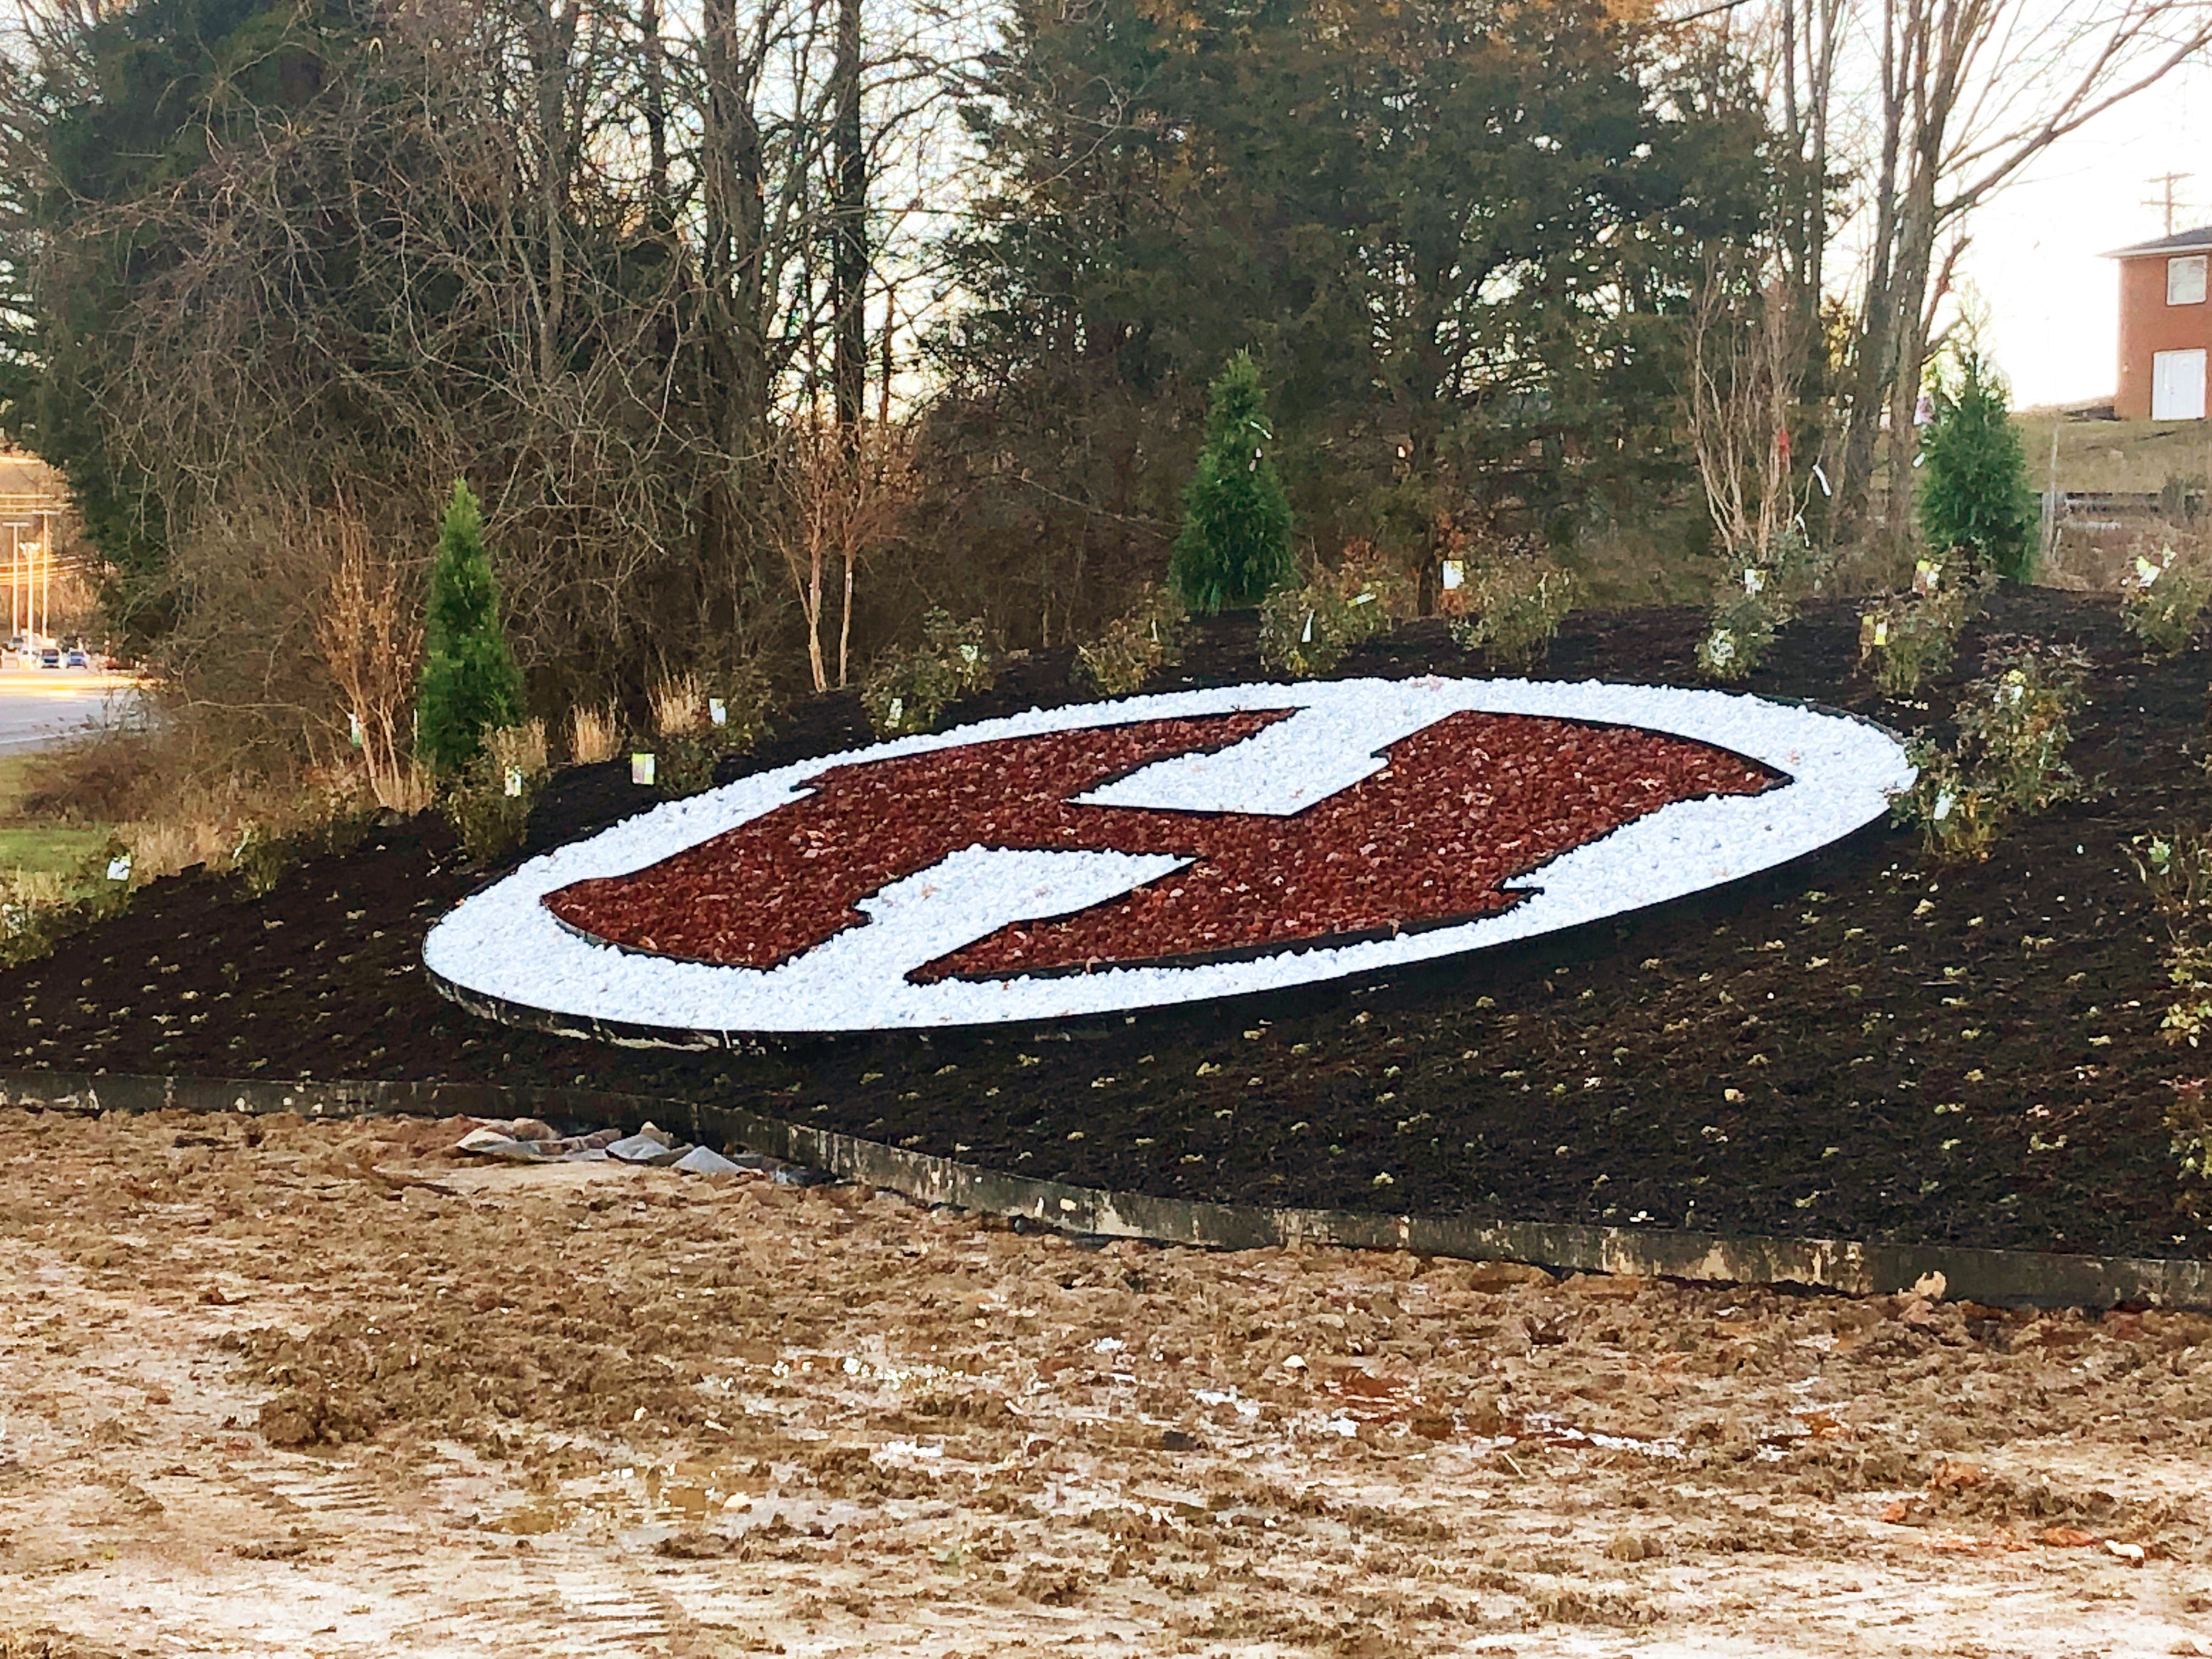 Thanks to the Halls Business and Professional Association and local businesses for this huge H, created with red mulch and rock that adorns the corner of Afton Drive and Maynardville Highway. It is a beautiful addition to the community.